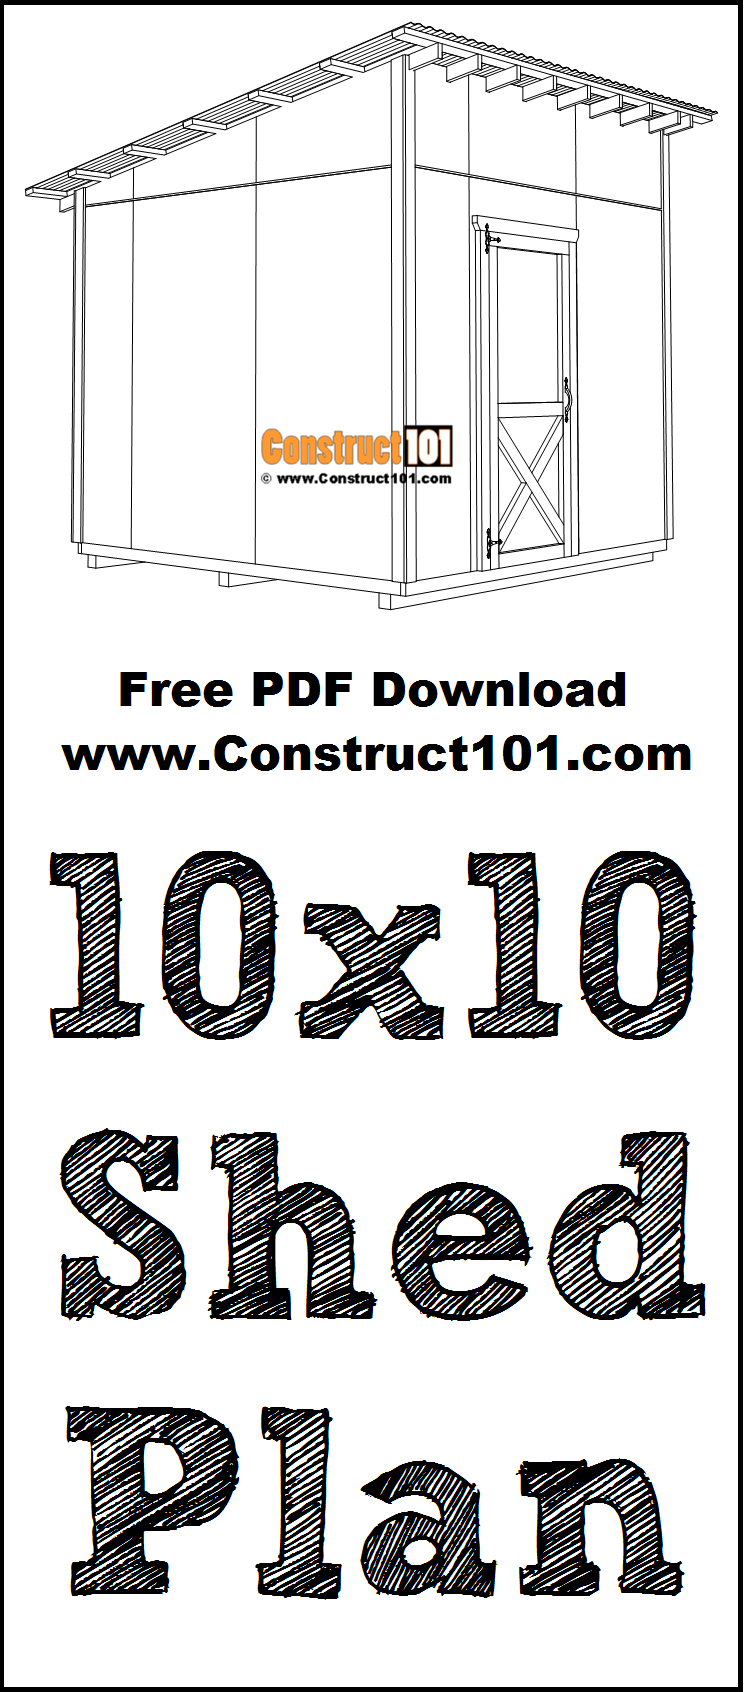 Large 10x10 lean to shed plans | Free PDF Download and Material List